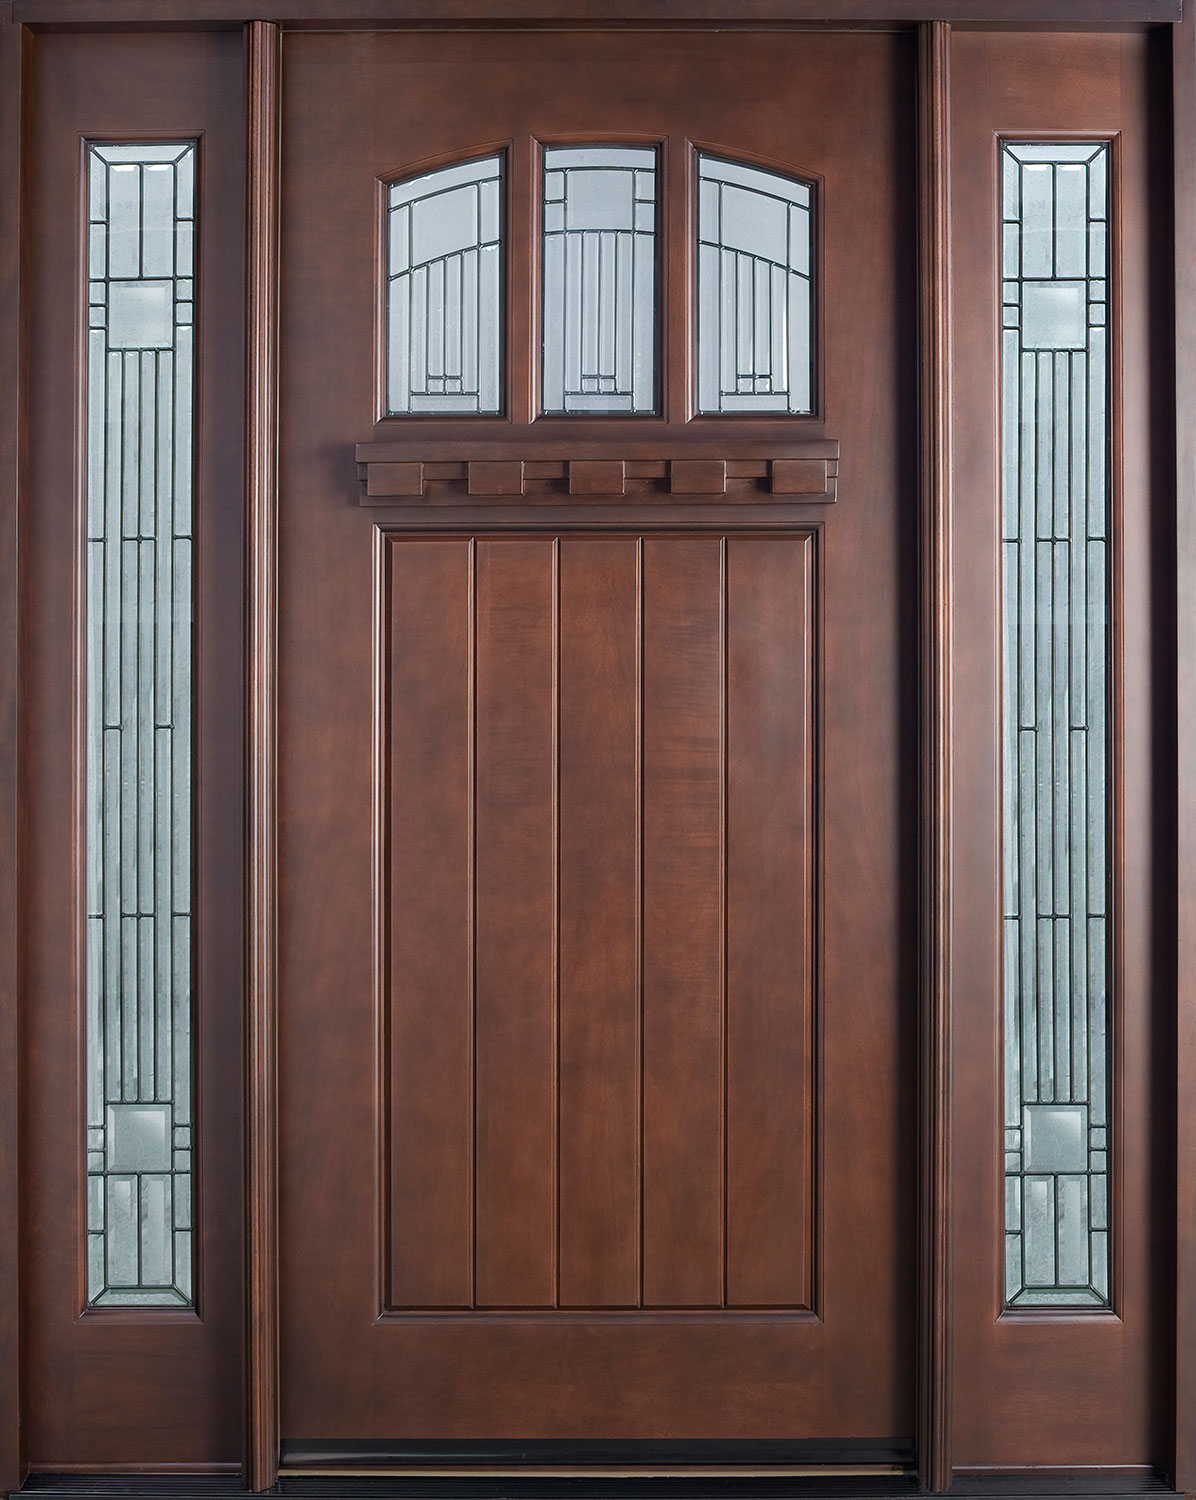 Fire rated wood doors with glass are equipped by steel inserts for safety